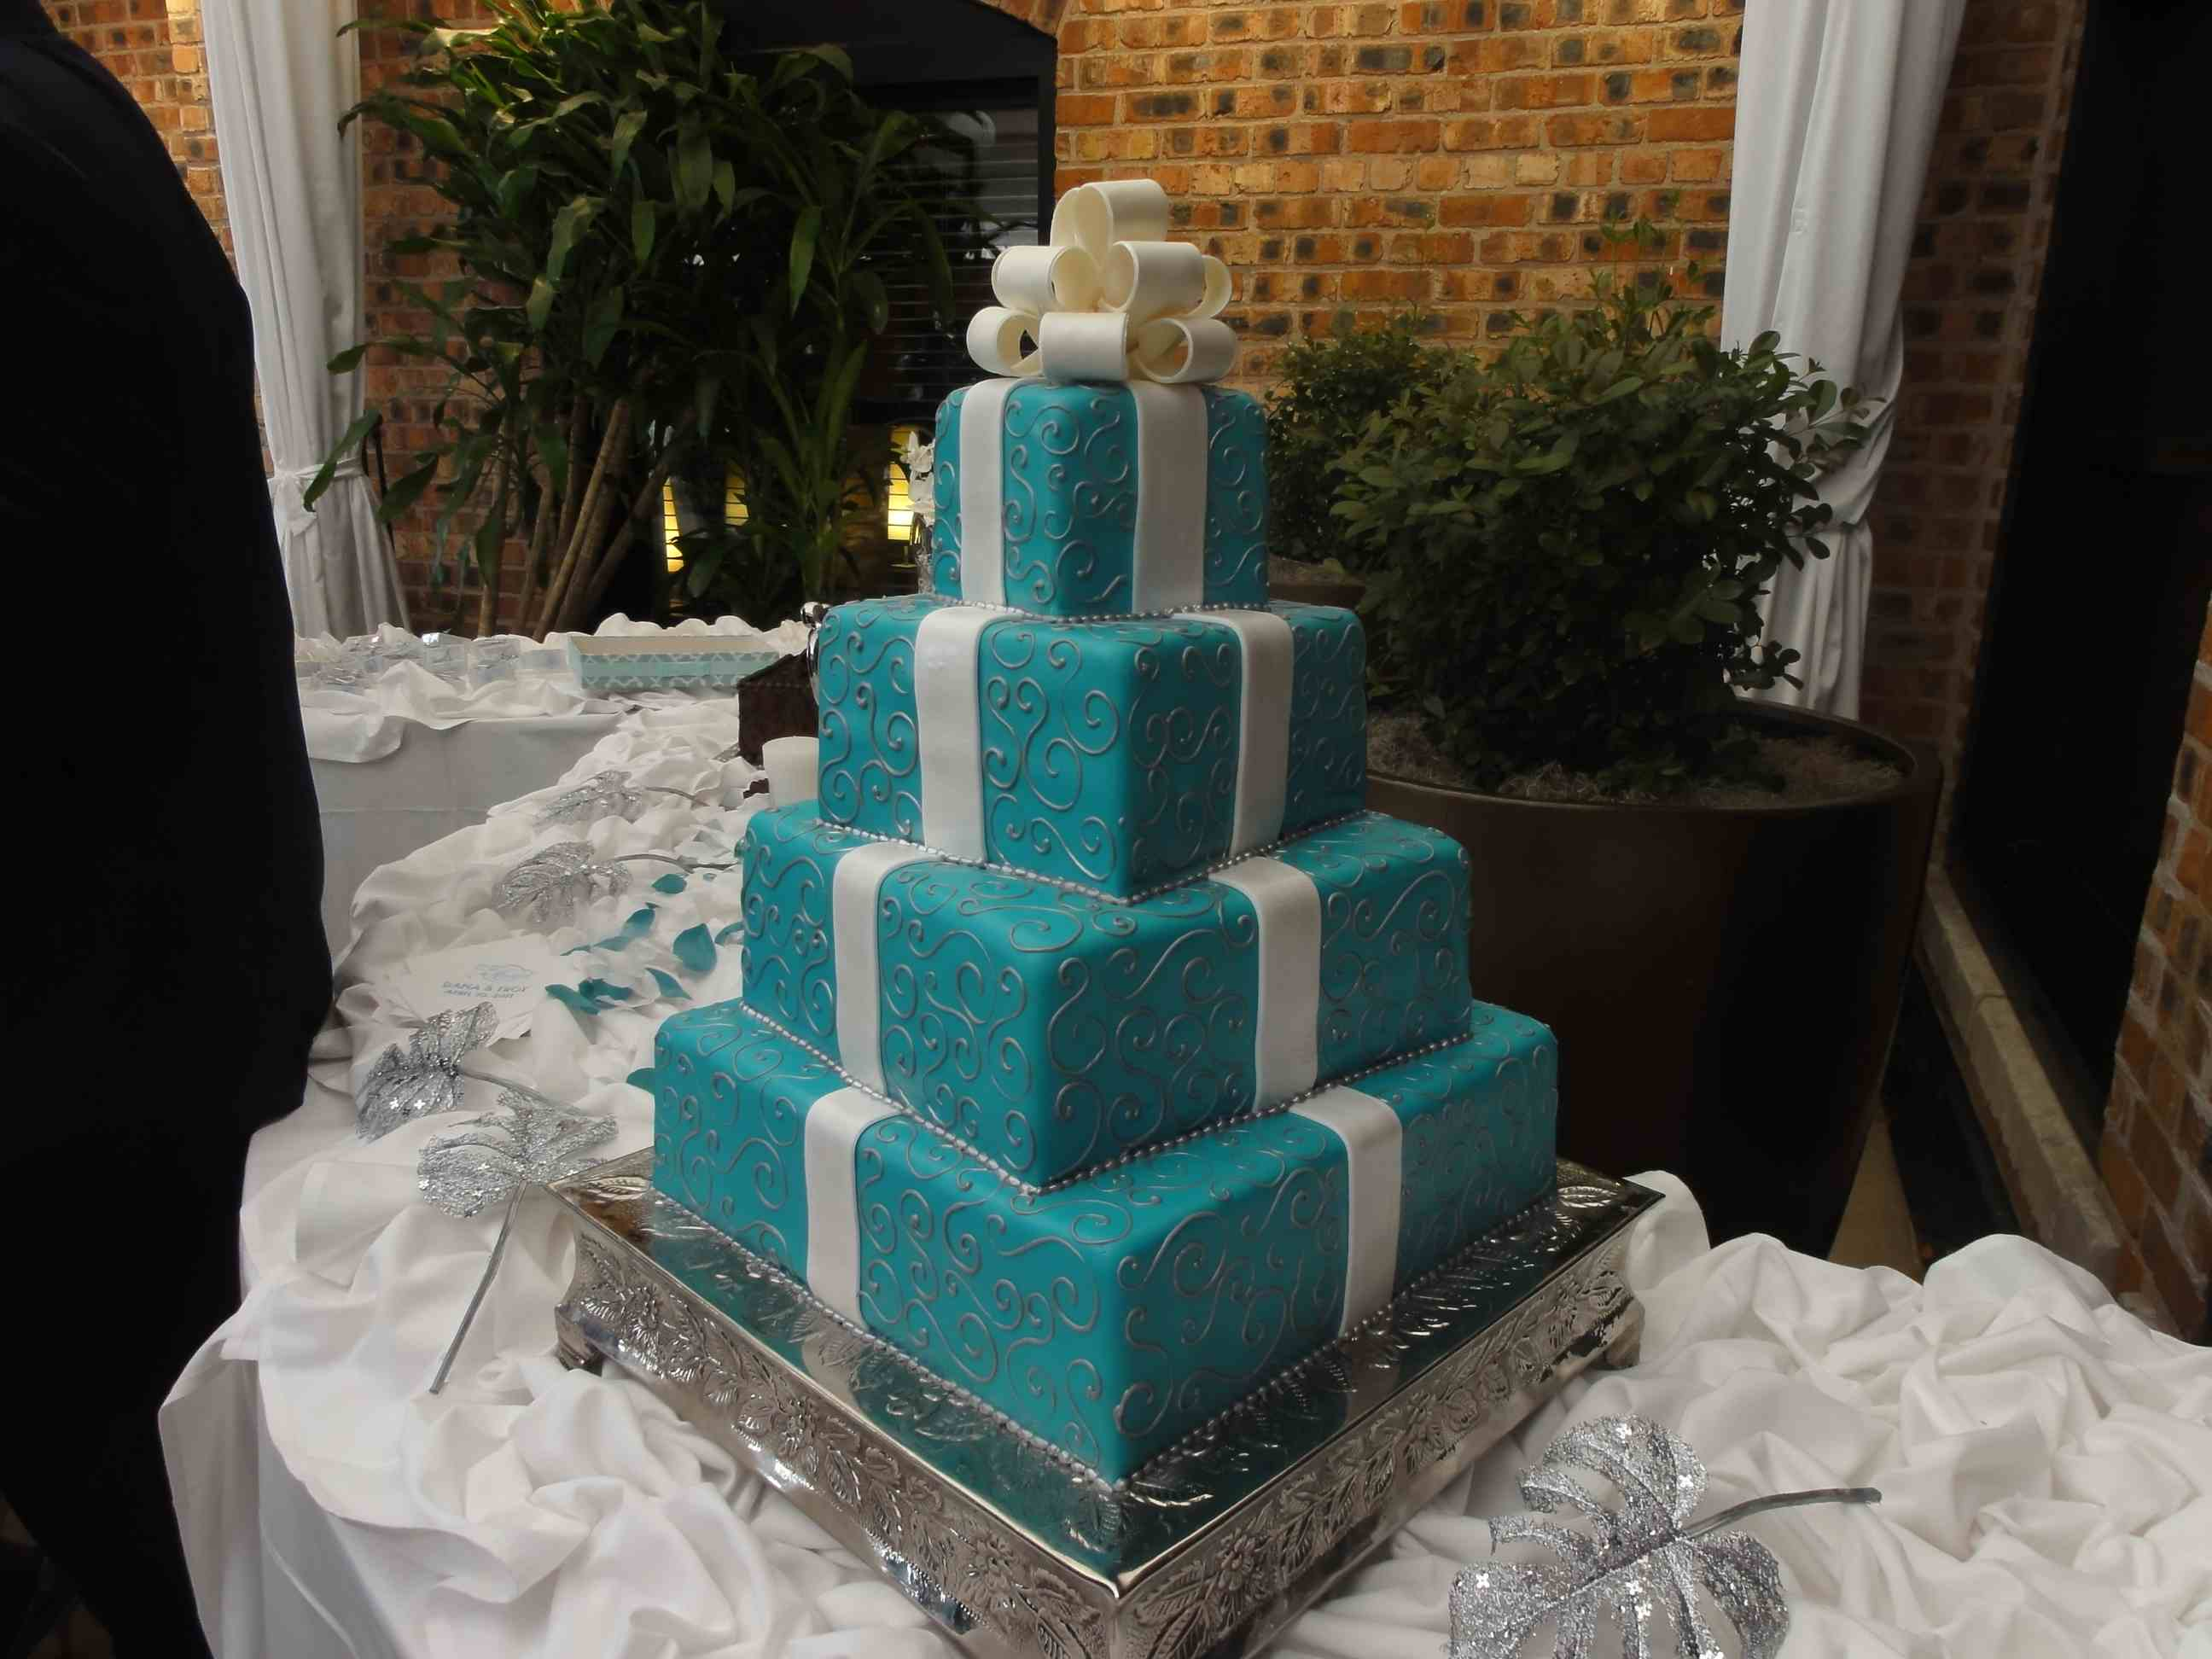 Who Made the Cake Wedding and Quinceanera Cakes in Houston TX